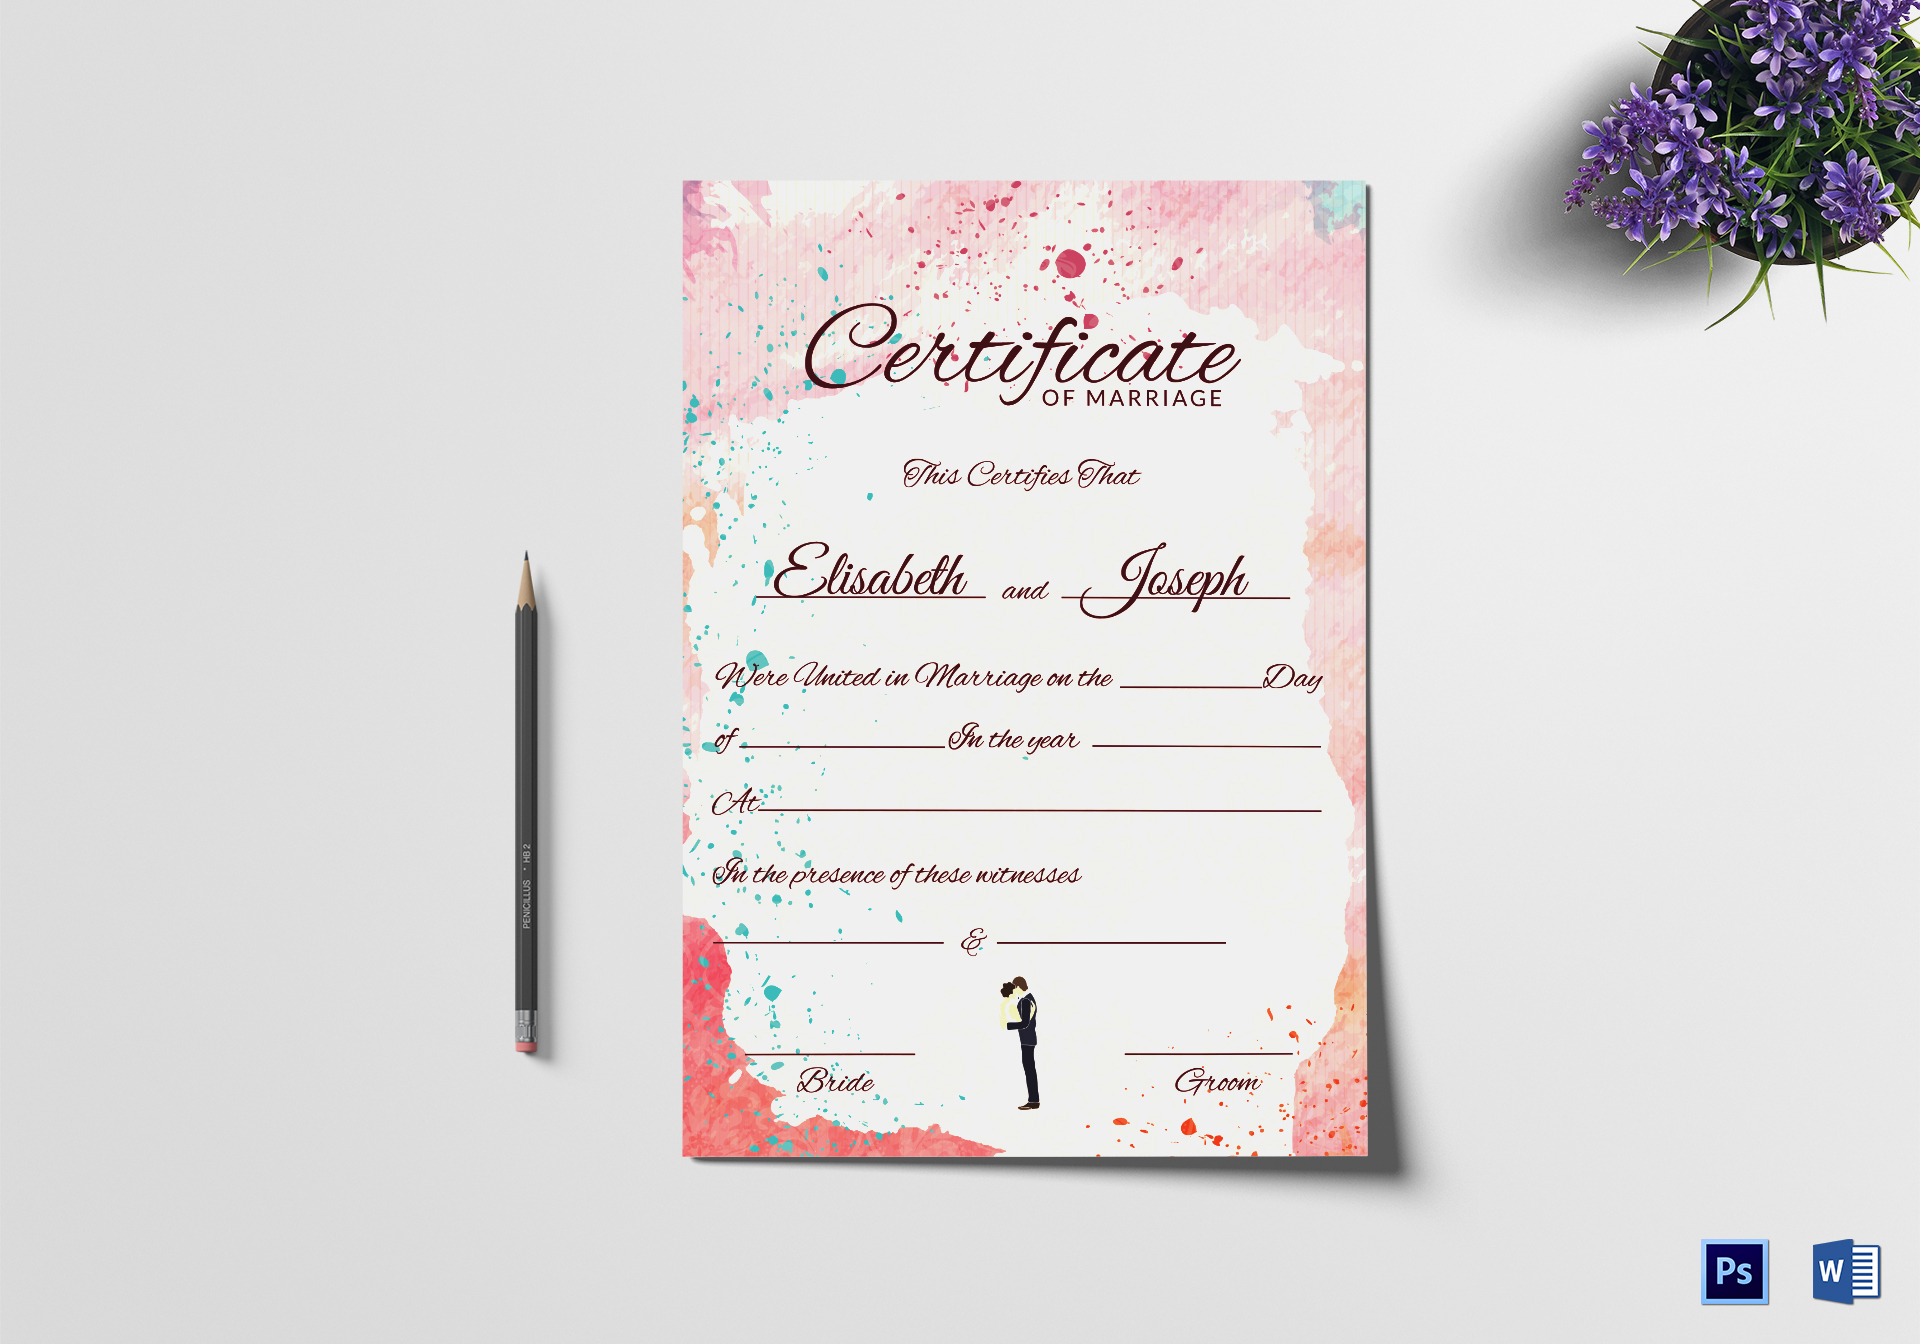 Christian marriage certificate design template in psd word traditional marriage certificate template yadclub